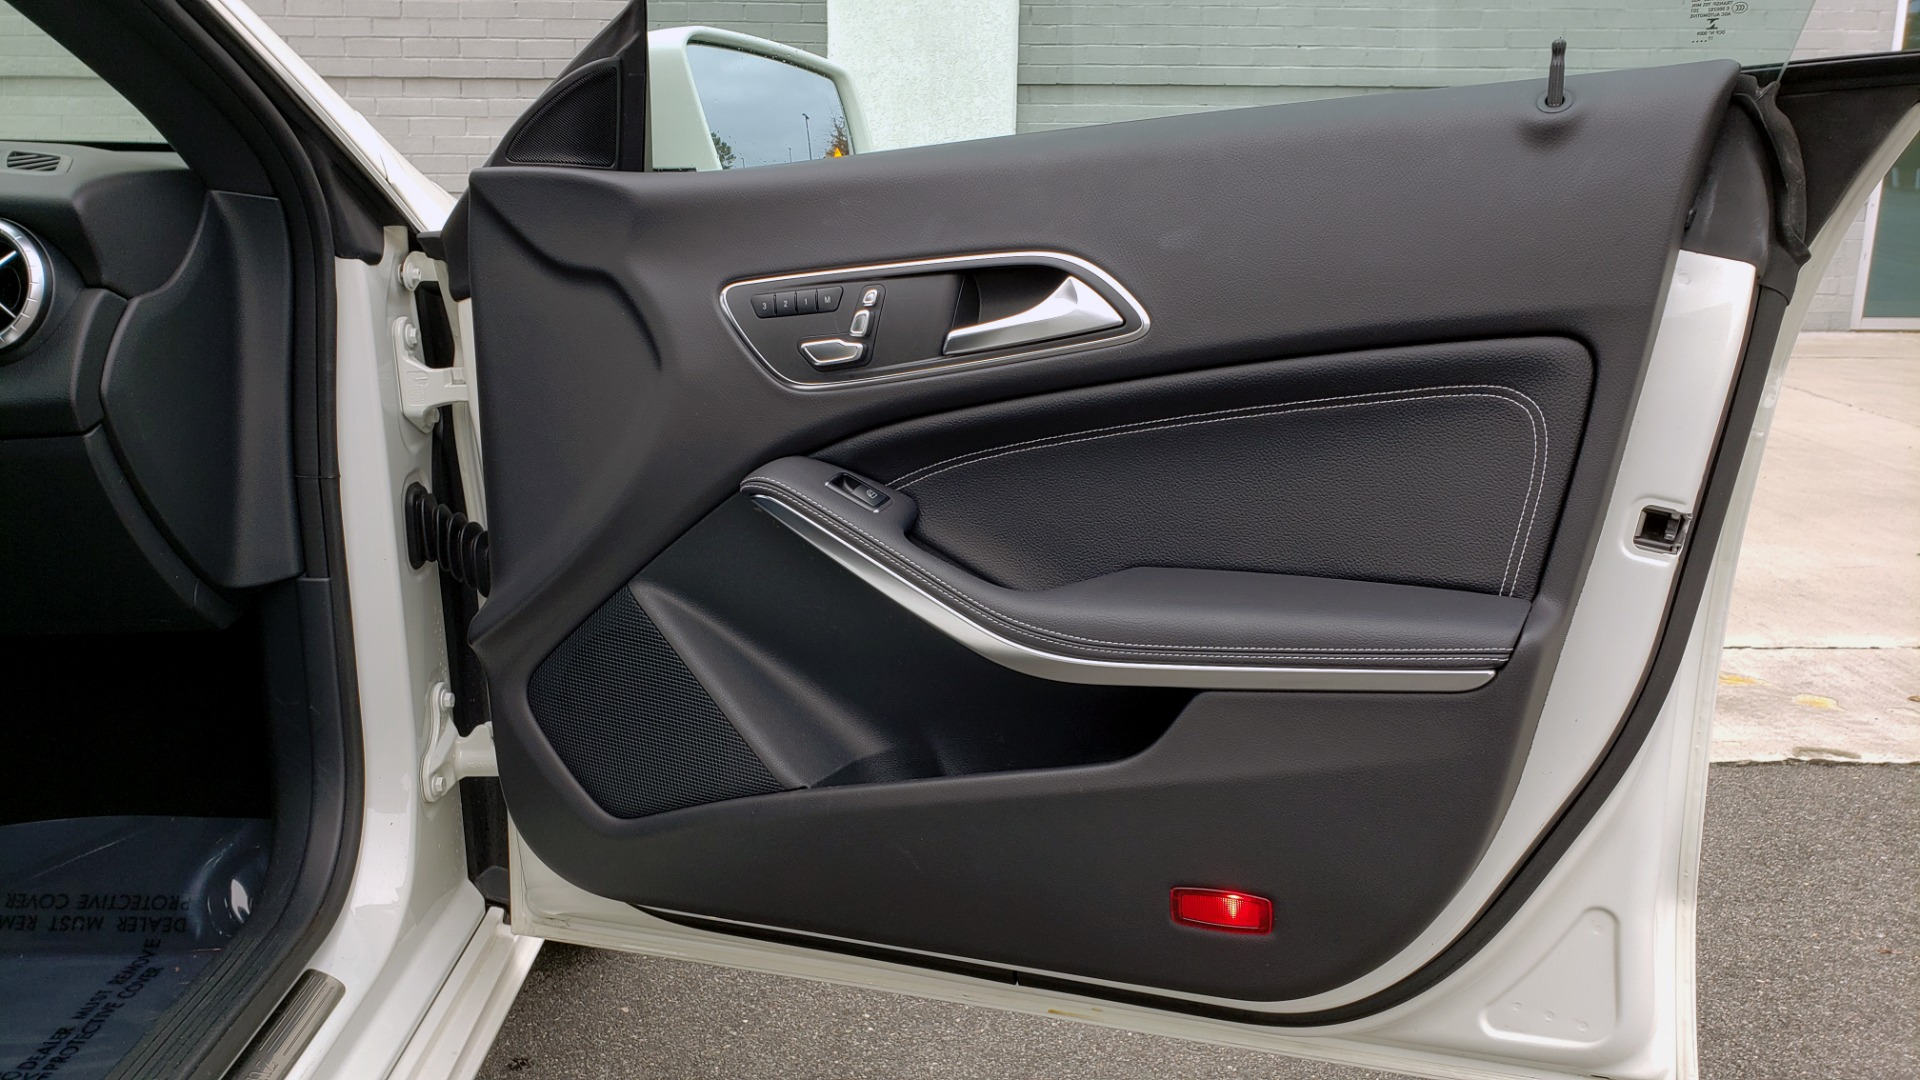 Used 2018 Mercedes-Benz CLA 250 PREMIUM / NAV / PANO-ROOF / APPLE CARPLAY / REARVIEW for sale $23,995 at Formula Imports in Charlotte NC 28227 63